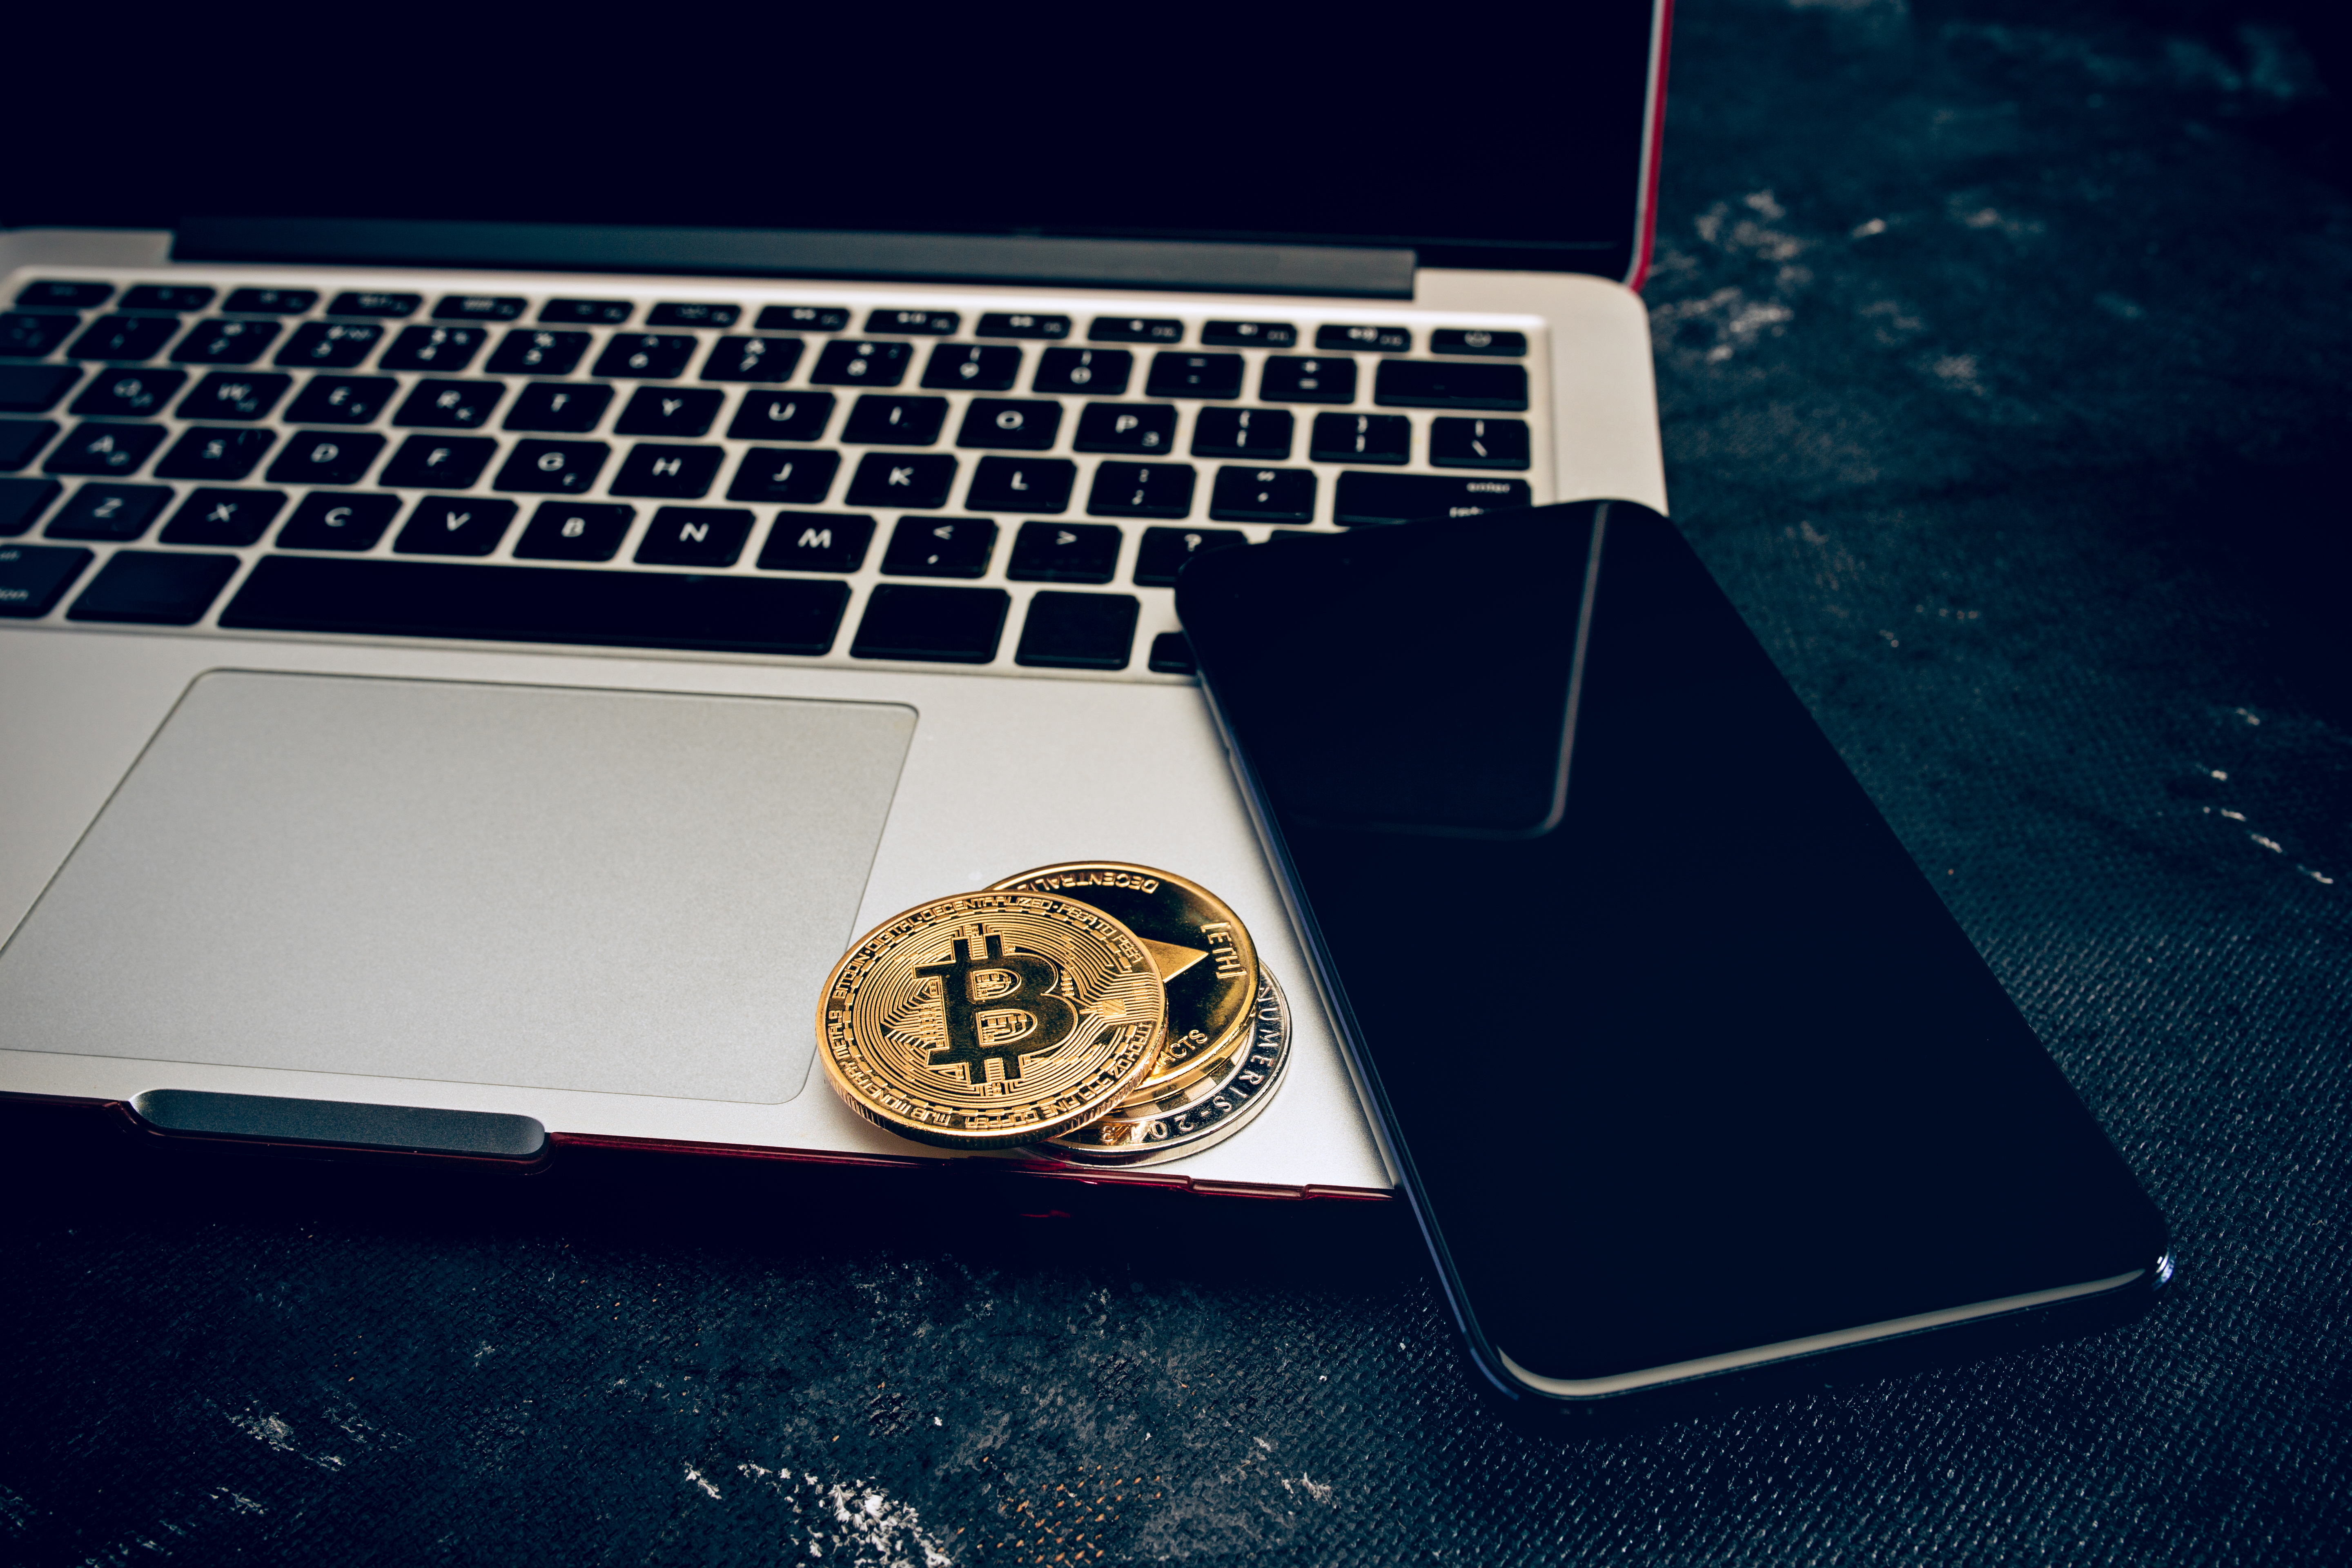 The golden bitcoin and mobile phone on keyboard. Cryptocurrency bitcoin coins. Litecoin, Bitcoin, Ethereum, e-commerce, busibess, finance concept. crypto currency symbol. virtual electronic money concepts